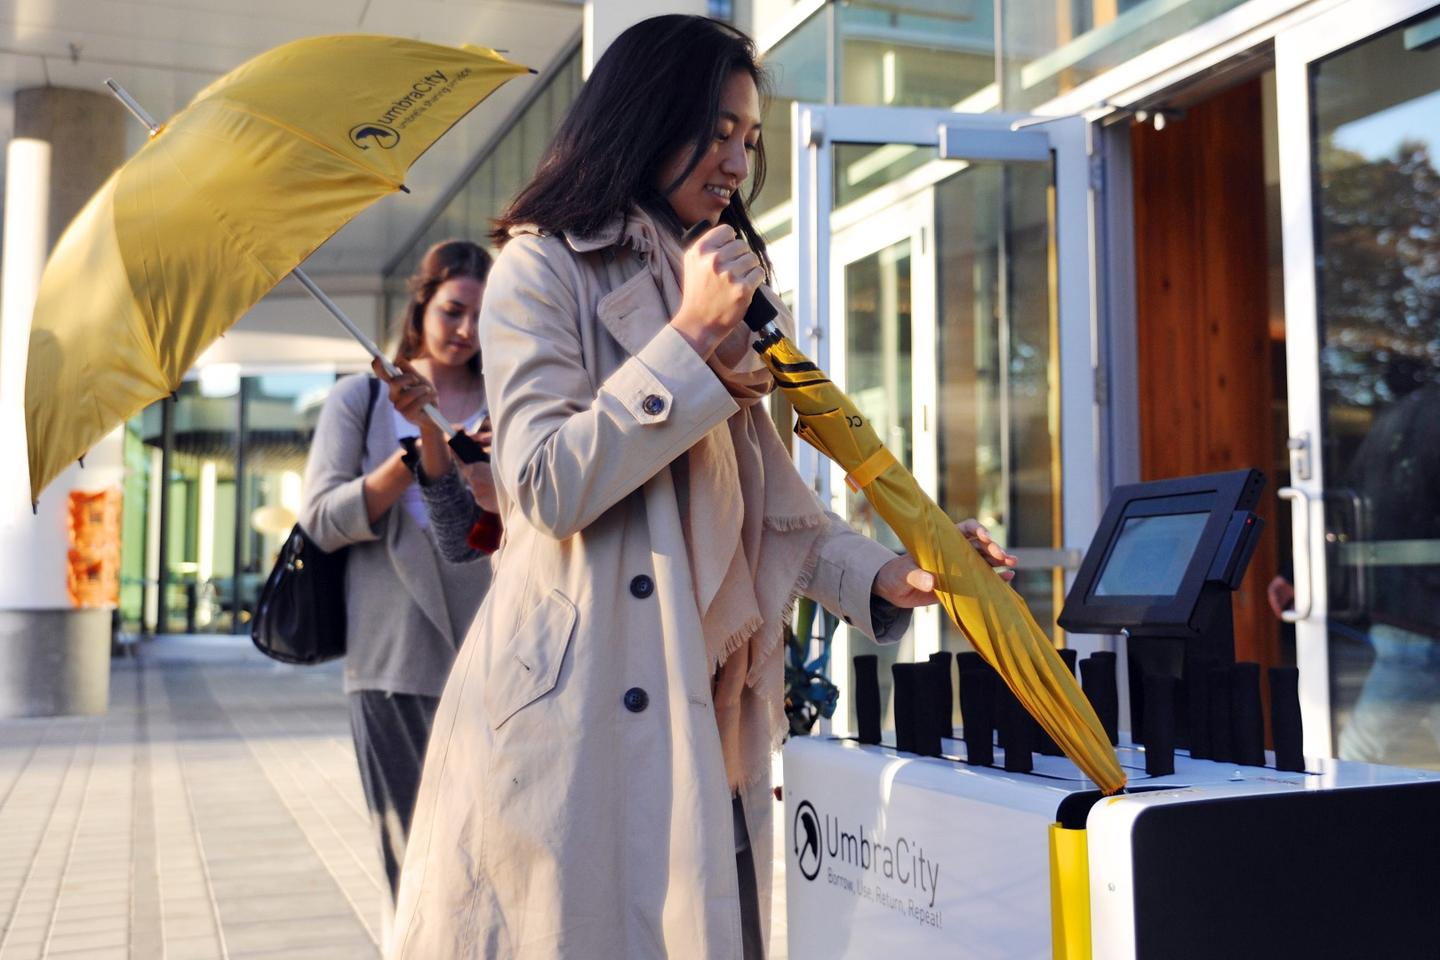 The UmbraCity solution is a fully automated umbrella rental kiosk that was inspired by sharing economy systems such as car-share and bike-share programs services